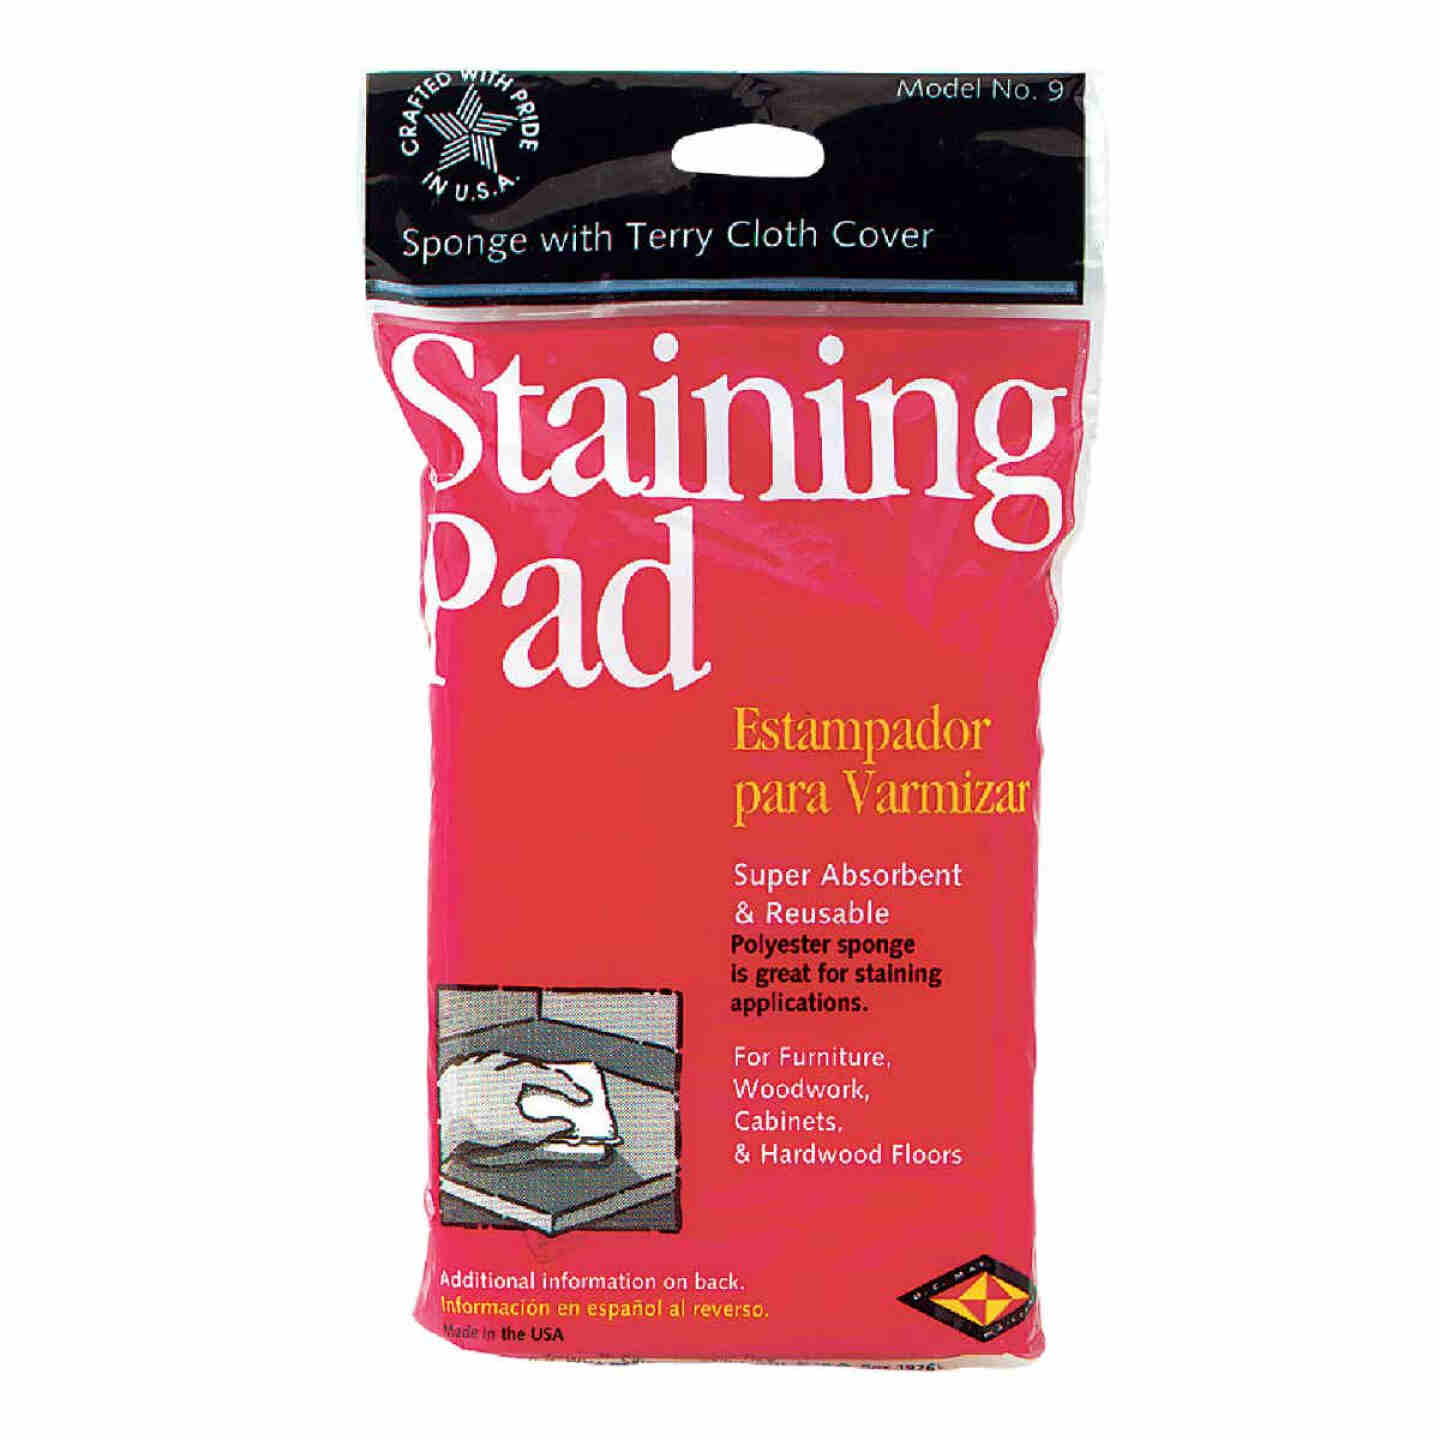 Trimaco SuperTuff 4-3/4 In. x 3-3/4 In. Staining Cloth Image 1